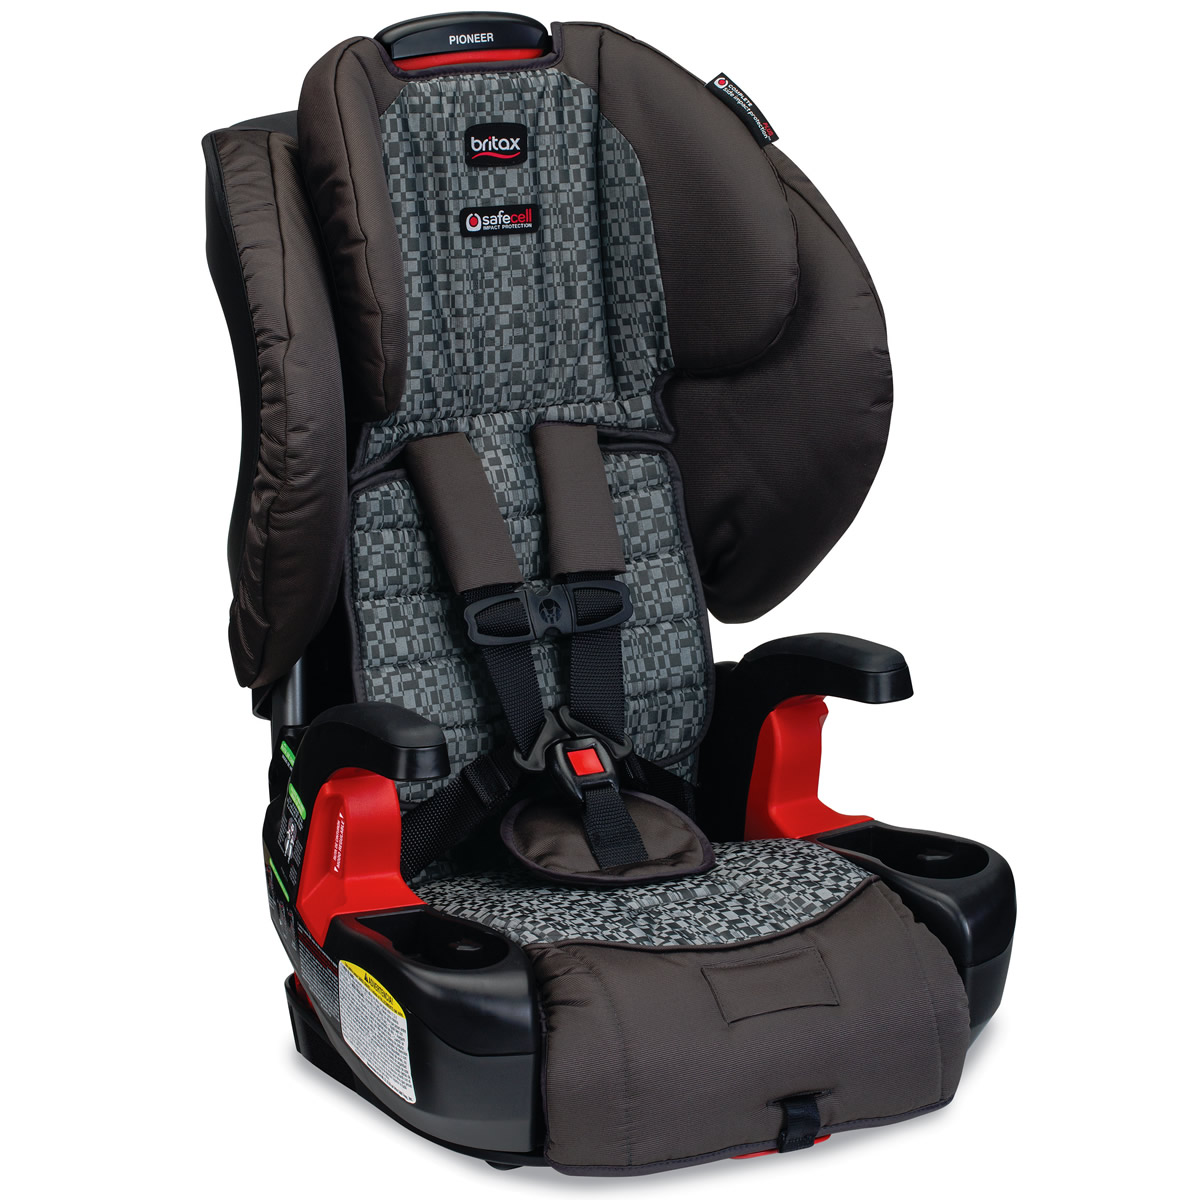 Britax Pioneer G1.1 Harness Booster Car Seat - Silver Cloud